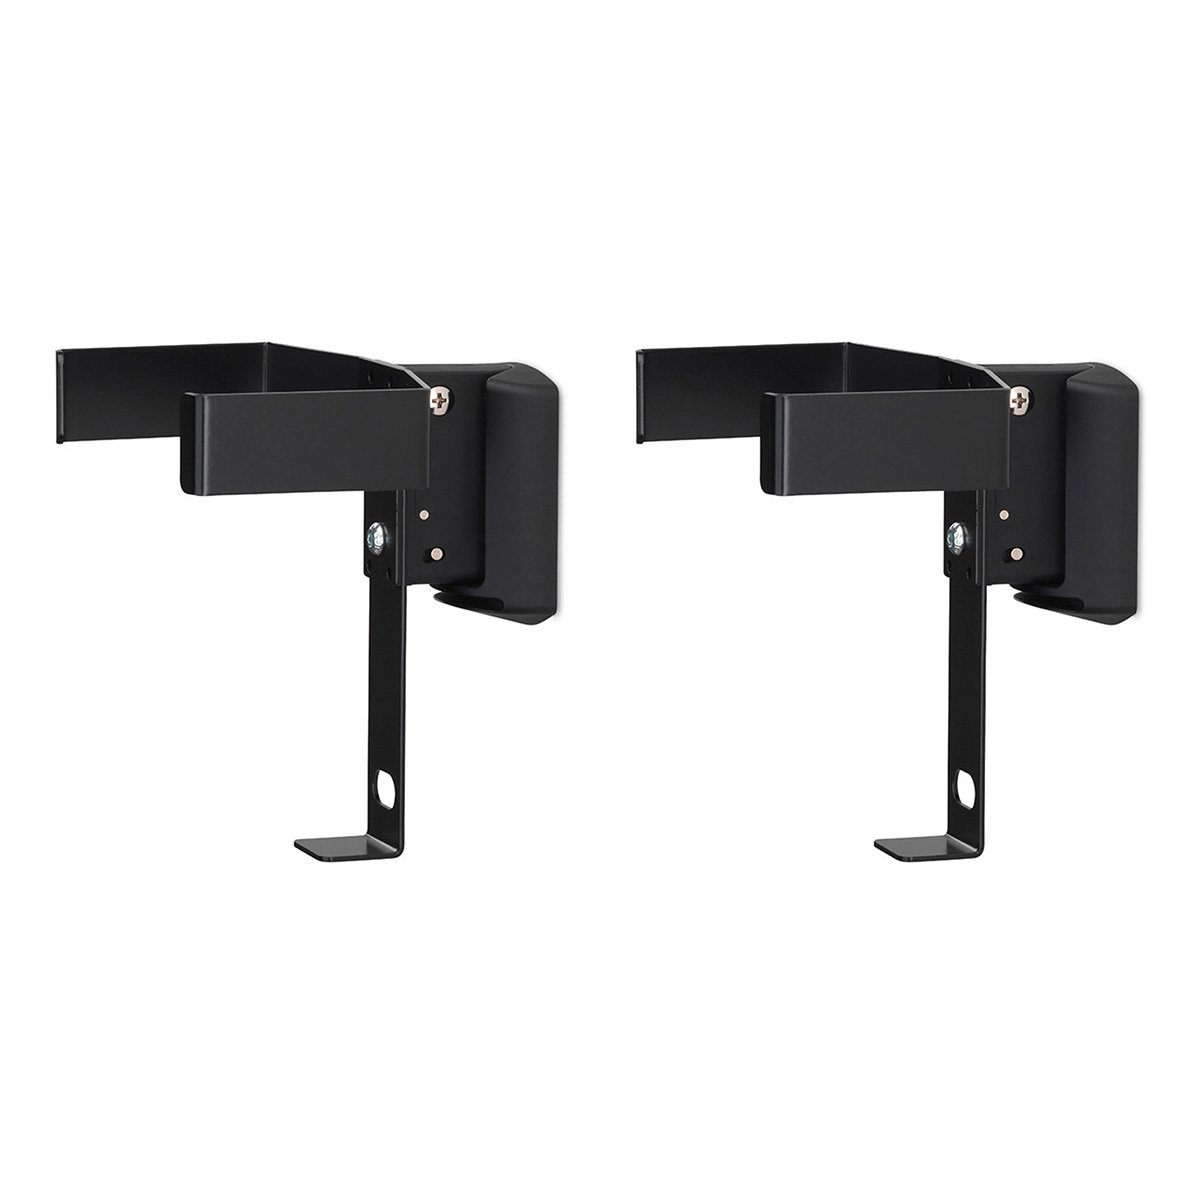 SoundXtra Wall Mounts for Bose SoundTouch 10 - Pair (Black) by SoundXtra